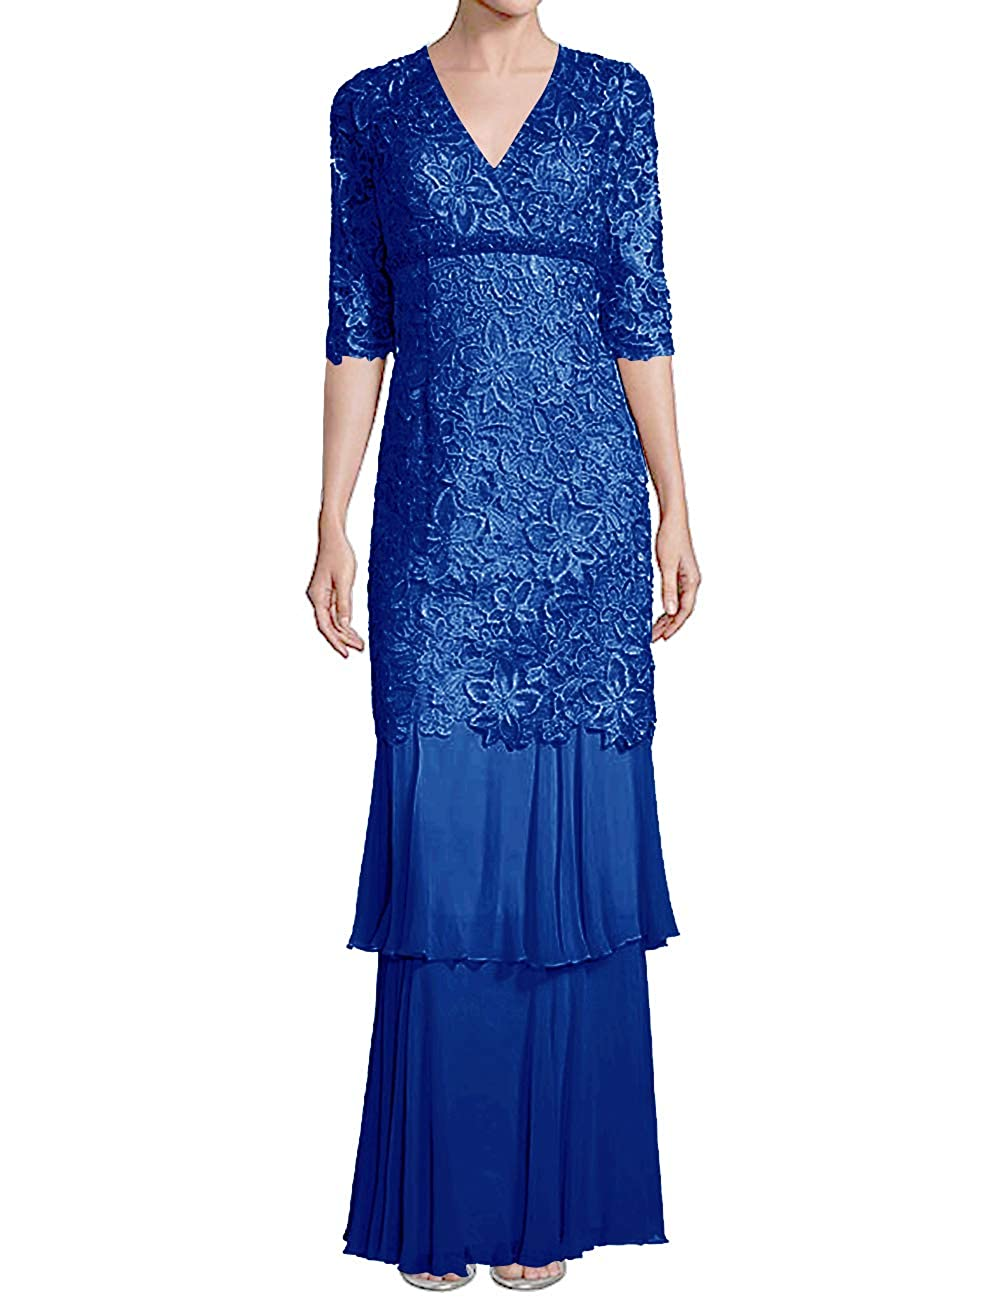 Dark bluee H.S.D Mother of The Bride Dresses Lace Formal Gowns Long Evening Dresses Sleeve Tiered